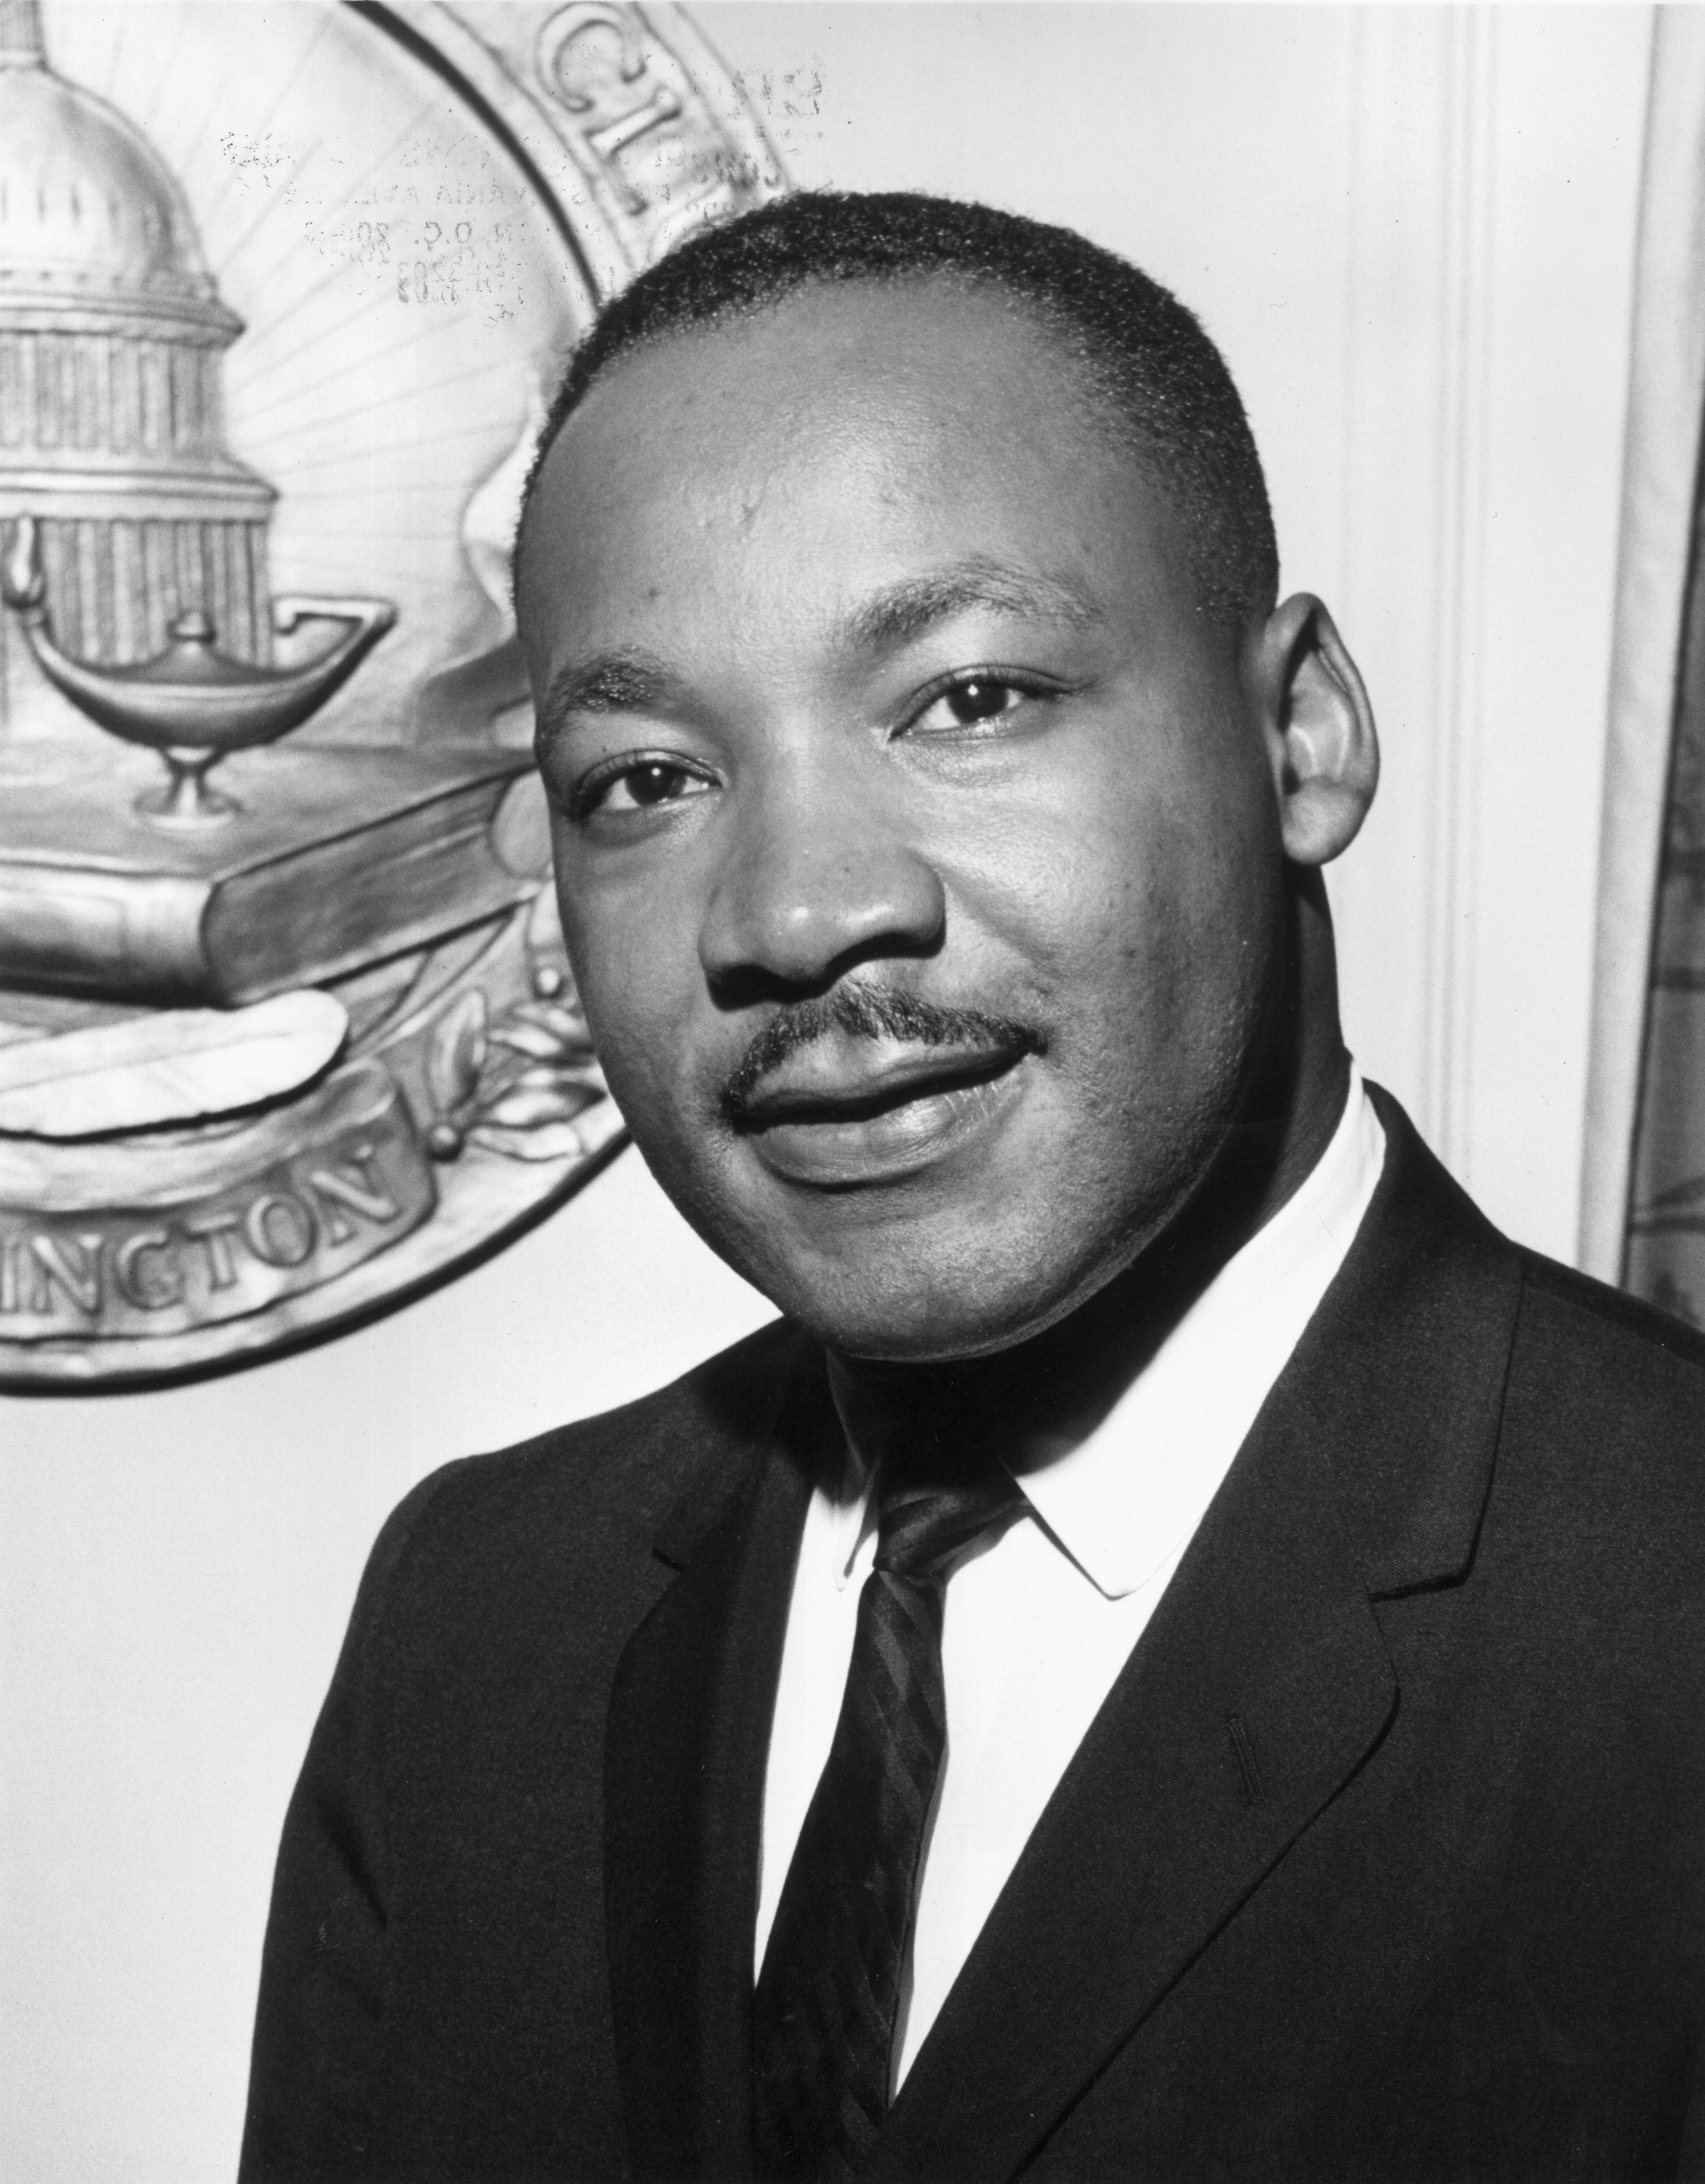 a biography of martin luther king jr a civil rights fighter Martin luther king, jr was a social activist and baptist minister who played a key role in the american civil rights movement from the mid-1950s until his assassination in 1968.